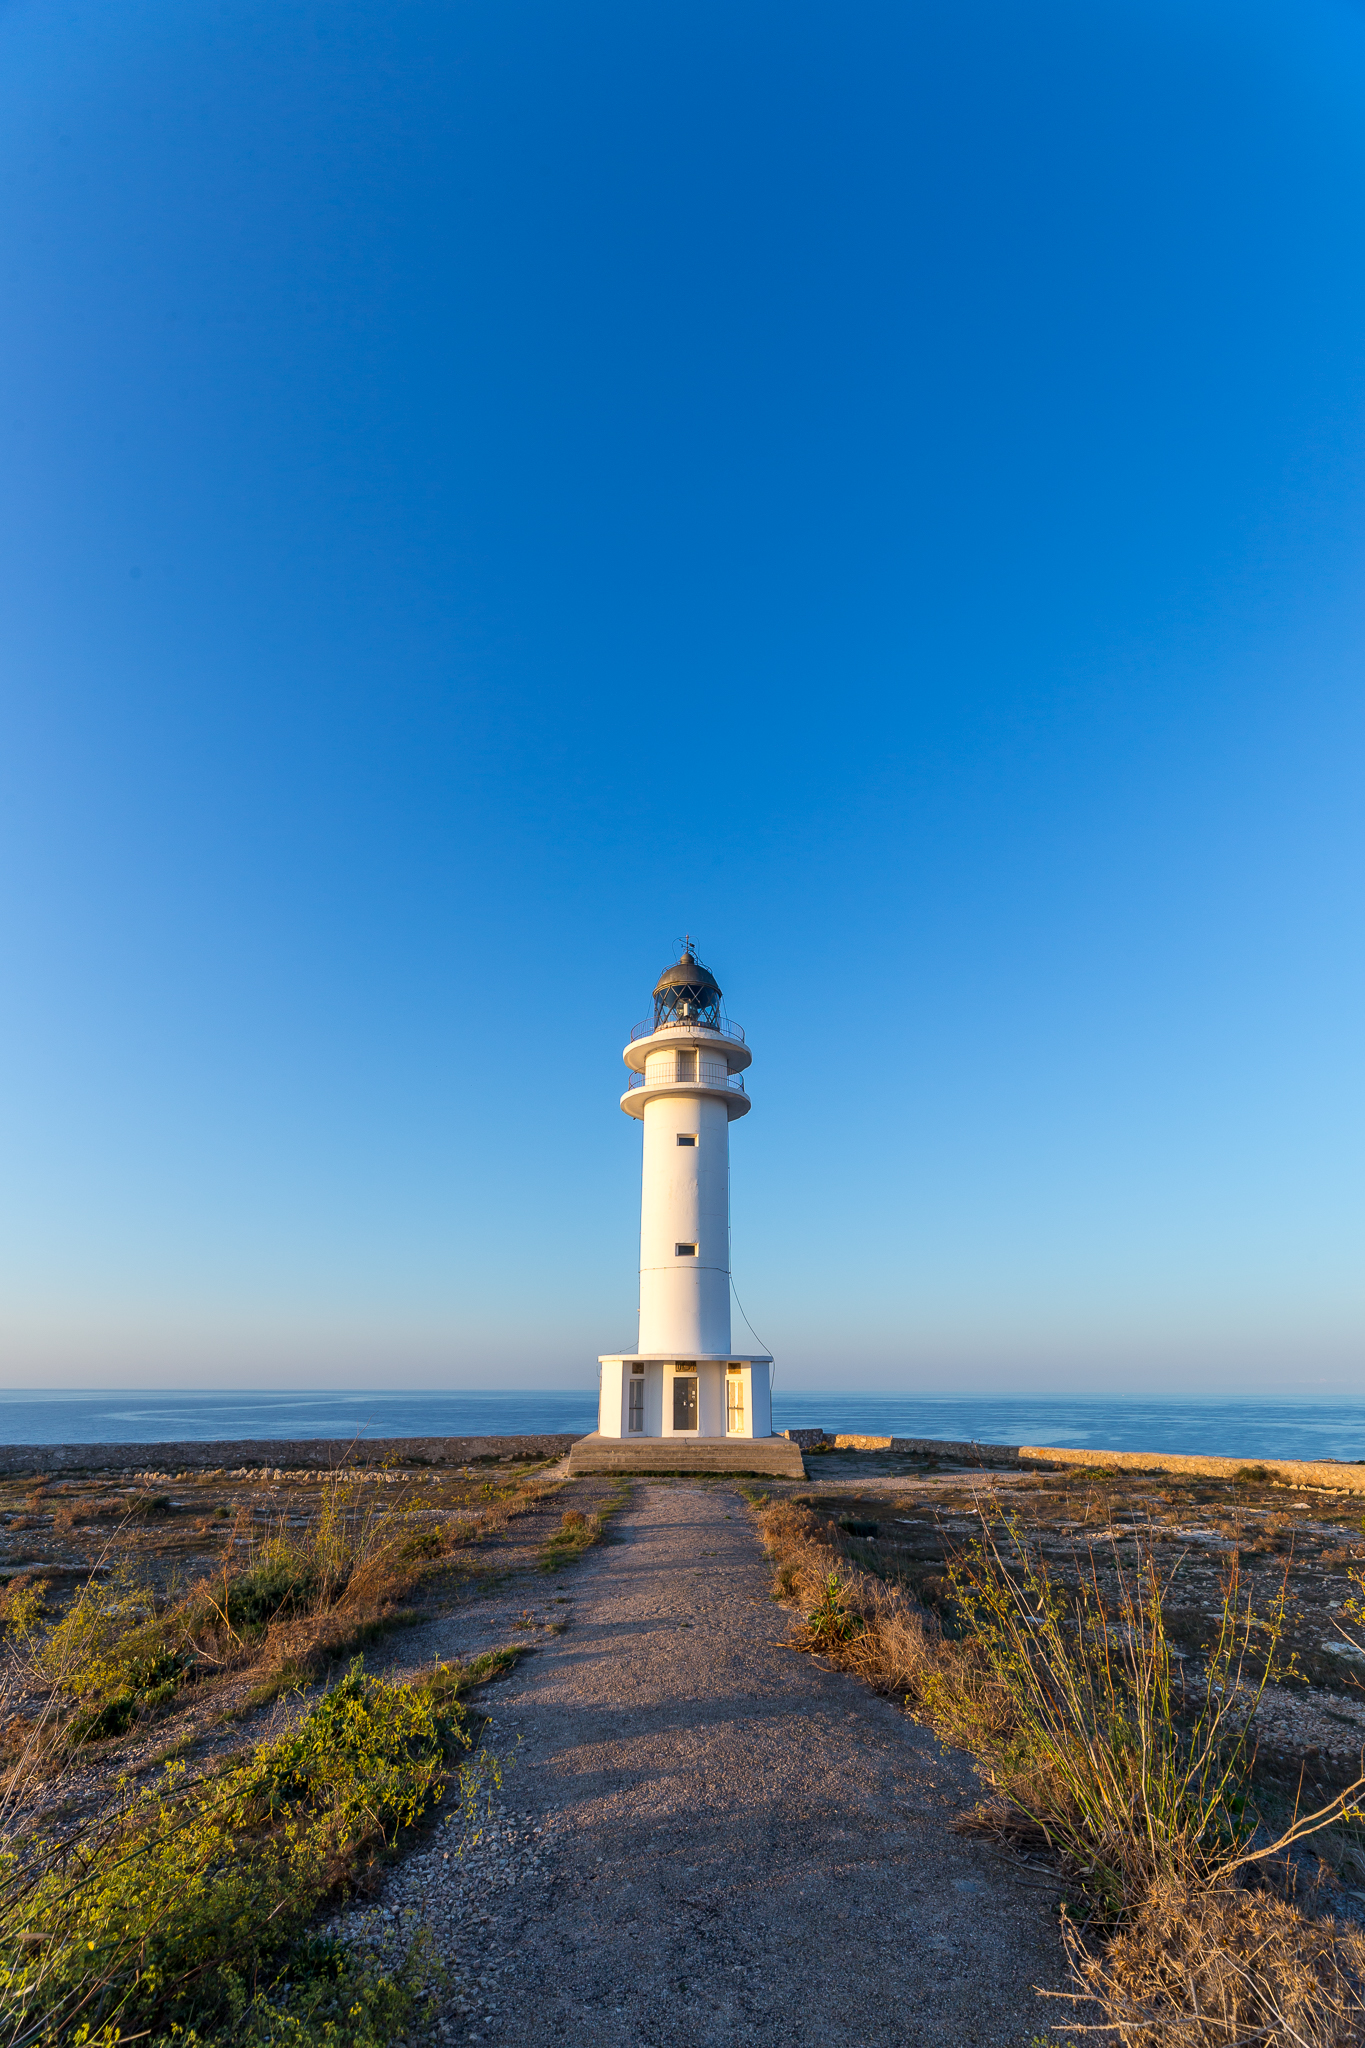 Cap Barbaria Lighthouse, Formentera